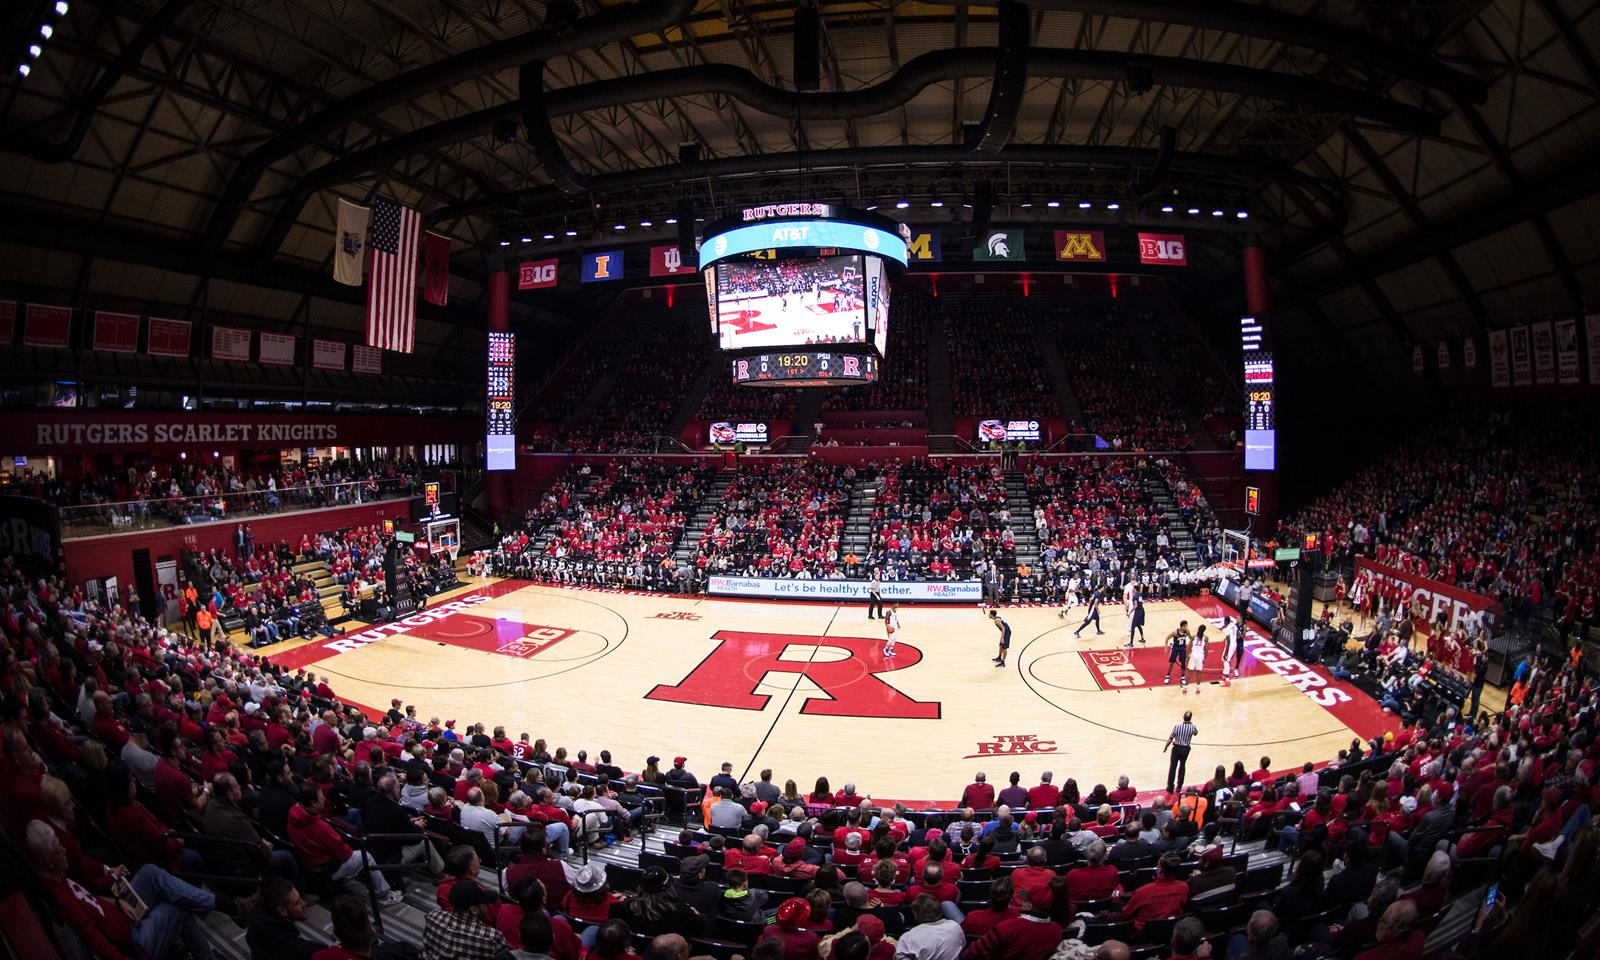 rutgers announces 2017-18 men's basketball schedule - rutgers